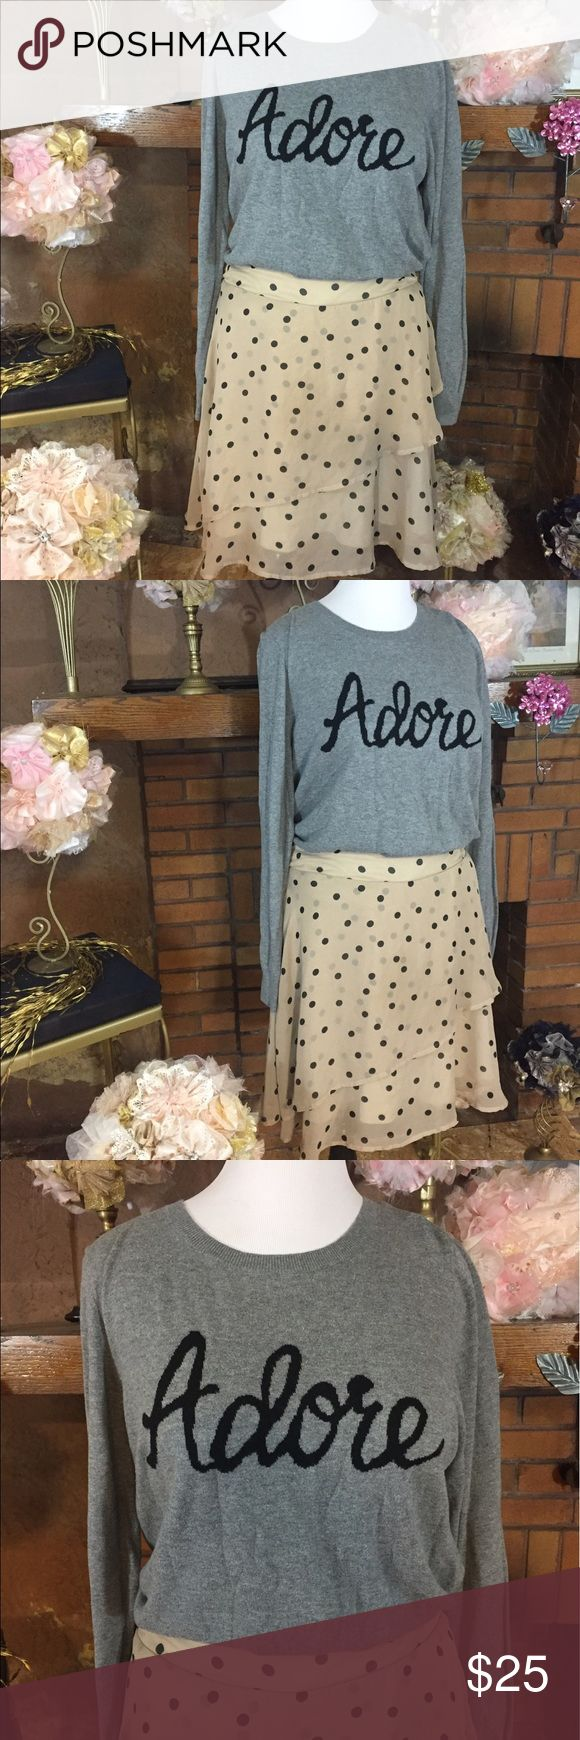 "Maurices tan and black polka dot skirt outfit Maurices tan and black polka dot skirt. Chiffon with ruffle size XL. Approx measurements are 35-44 inch elastic waist and 20 inches long. 100 % Polyester fully lined. Old Navy ""Adore"" sweater gray and black size XL. Lightweight and stretchy. Previously owned but in good condition free of stains and defects. Please check out all pictures. Read full description of the items. Ask me any questions. Maurices  Skirts Mini"